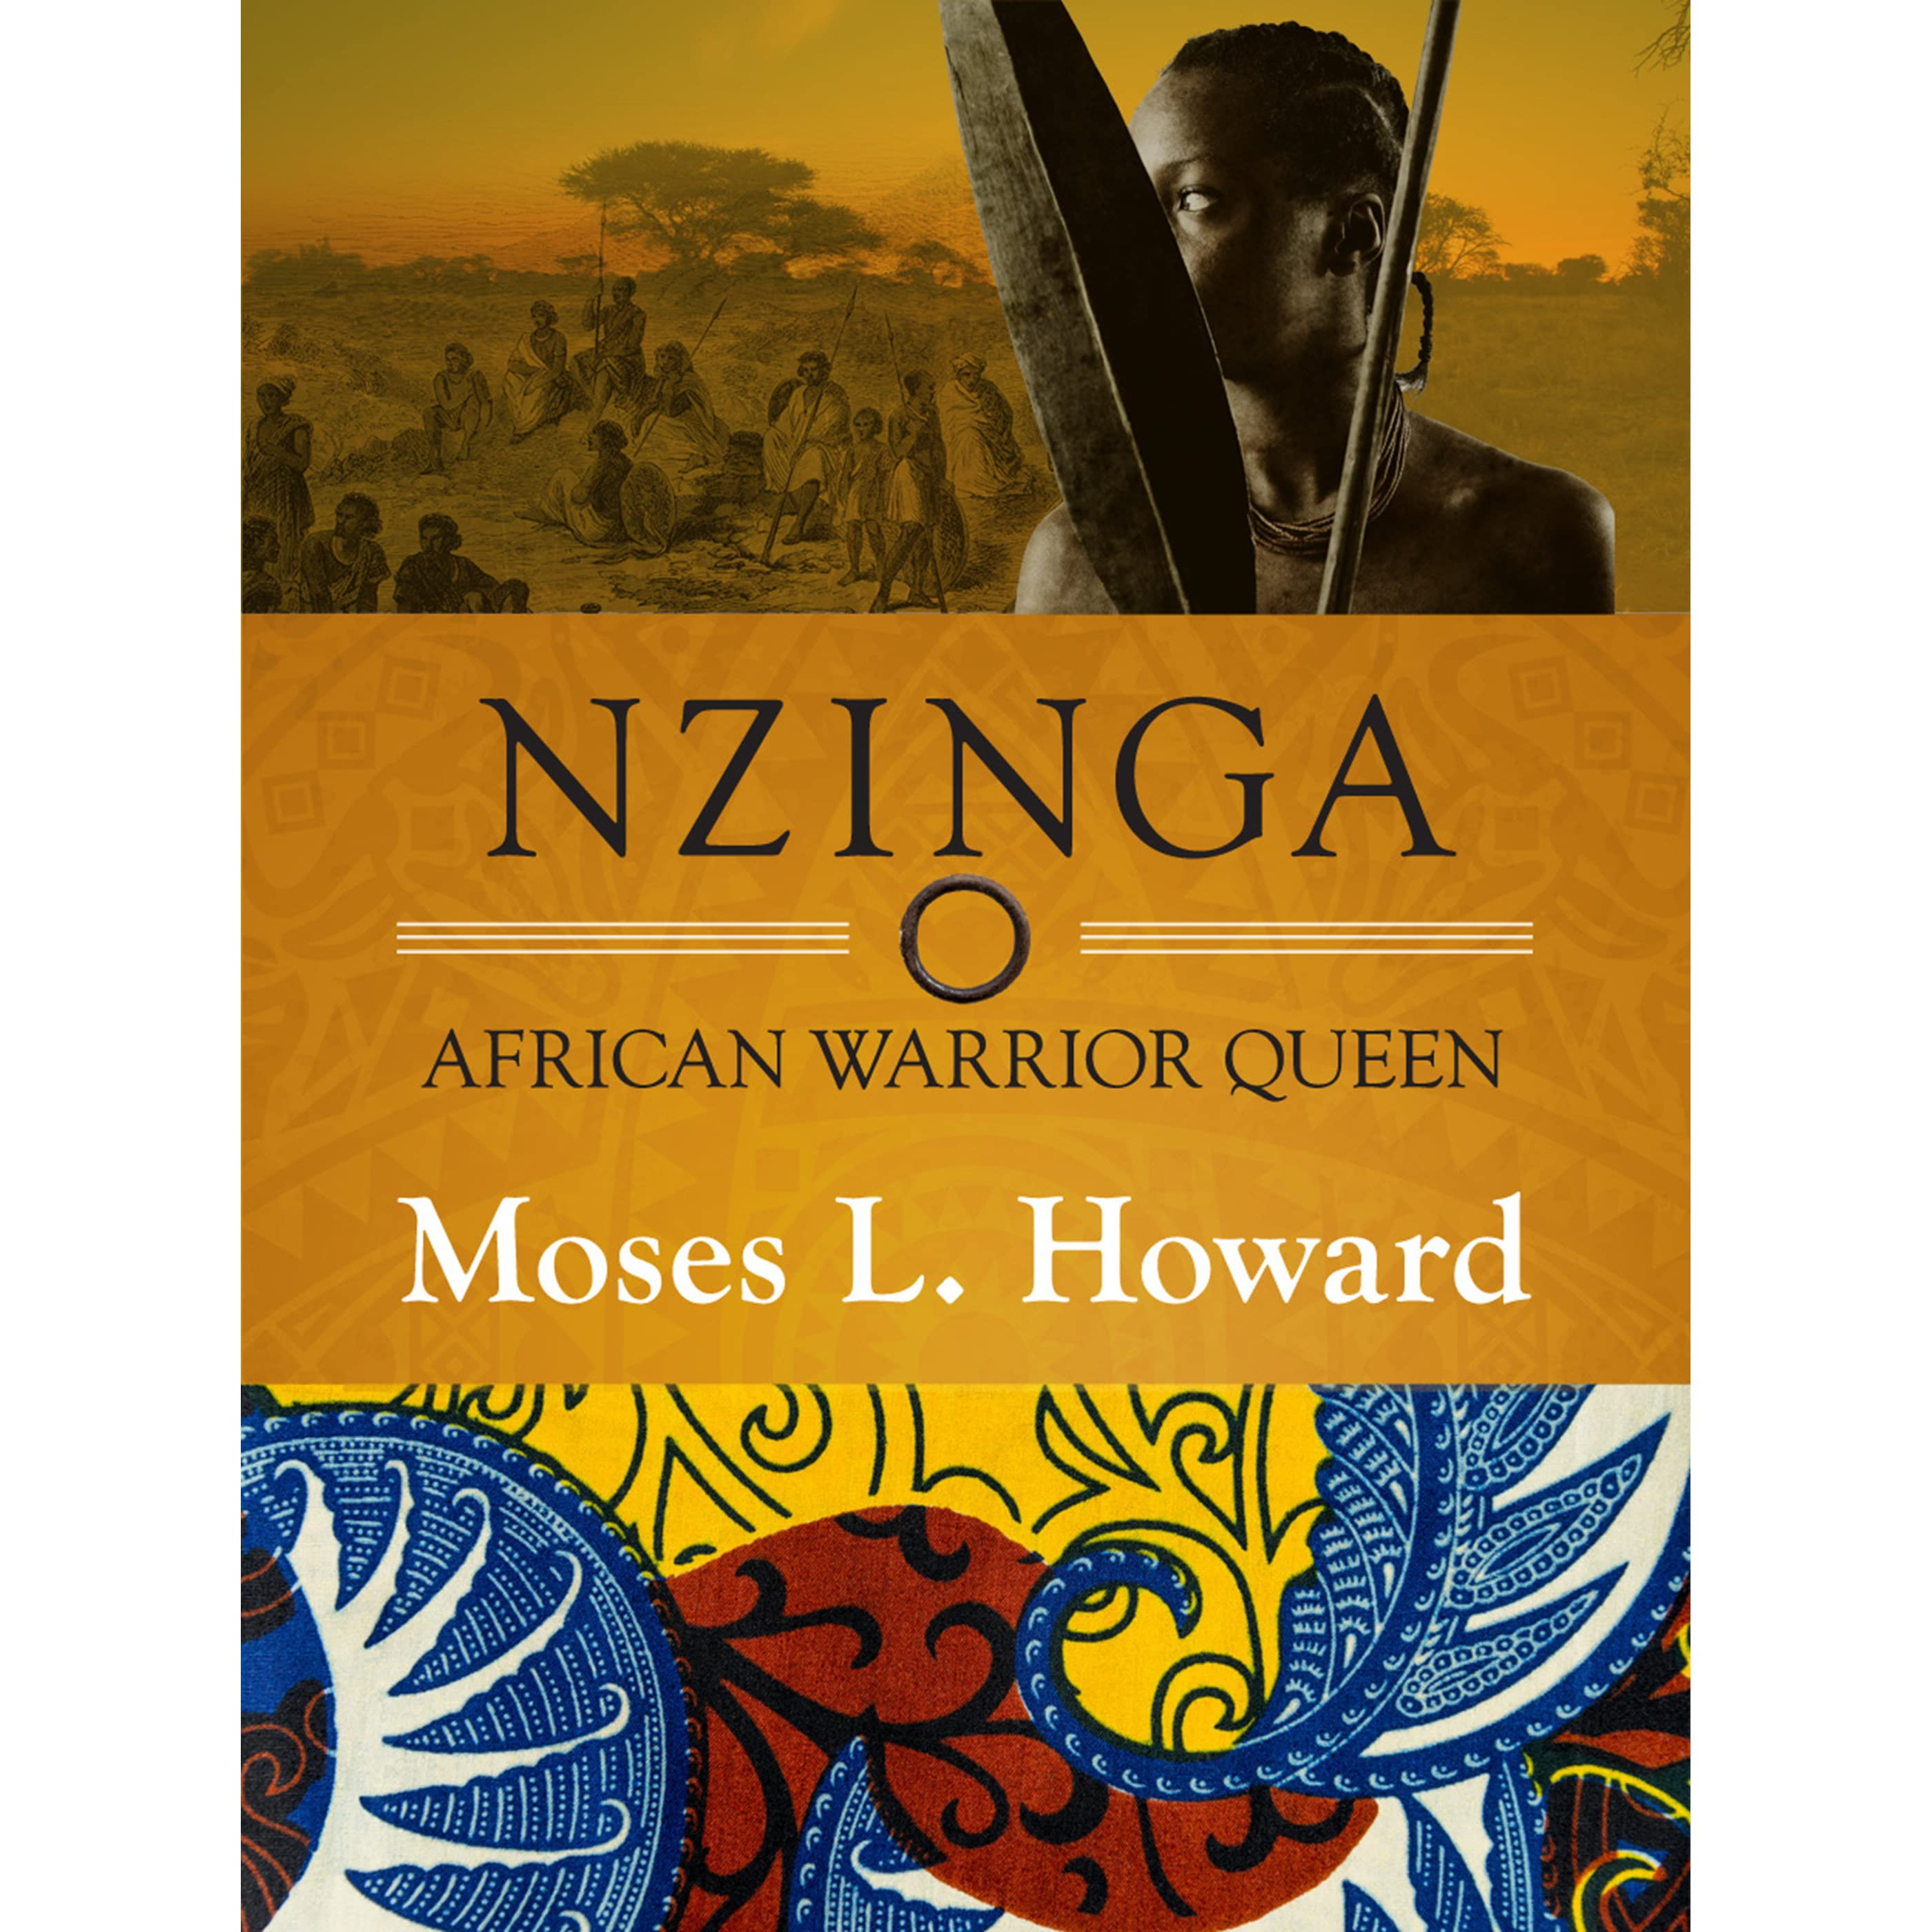 Warriors Book Series Review: Nzinga African Warrior Queen By Moses L. Howard